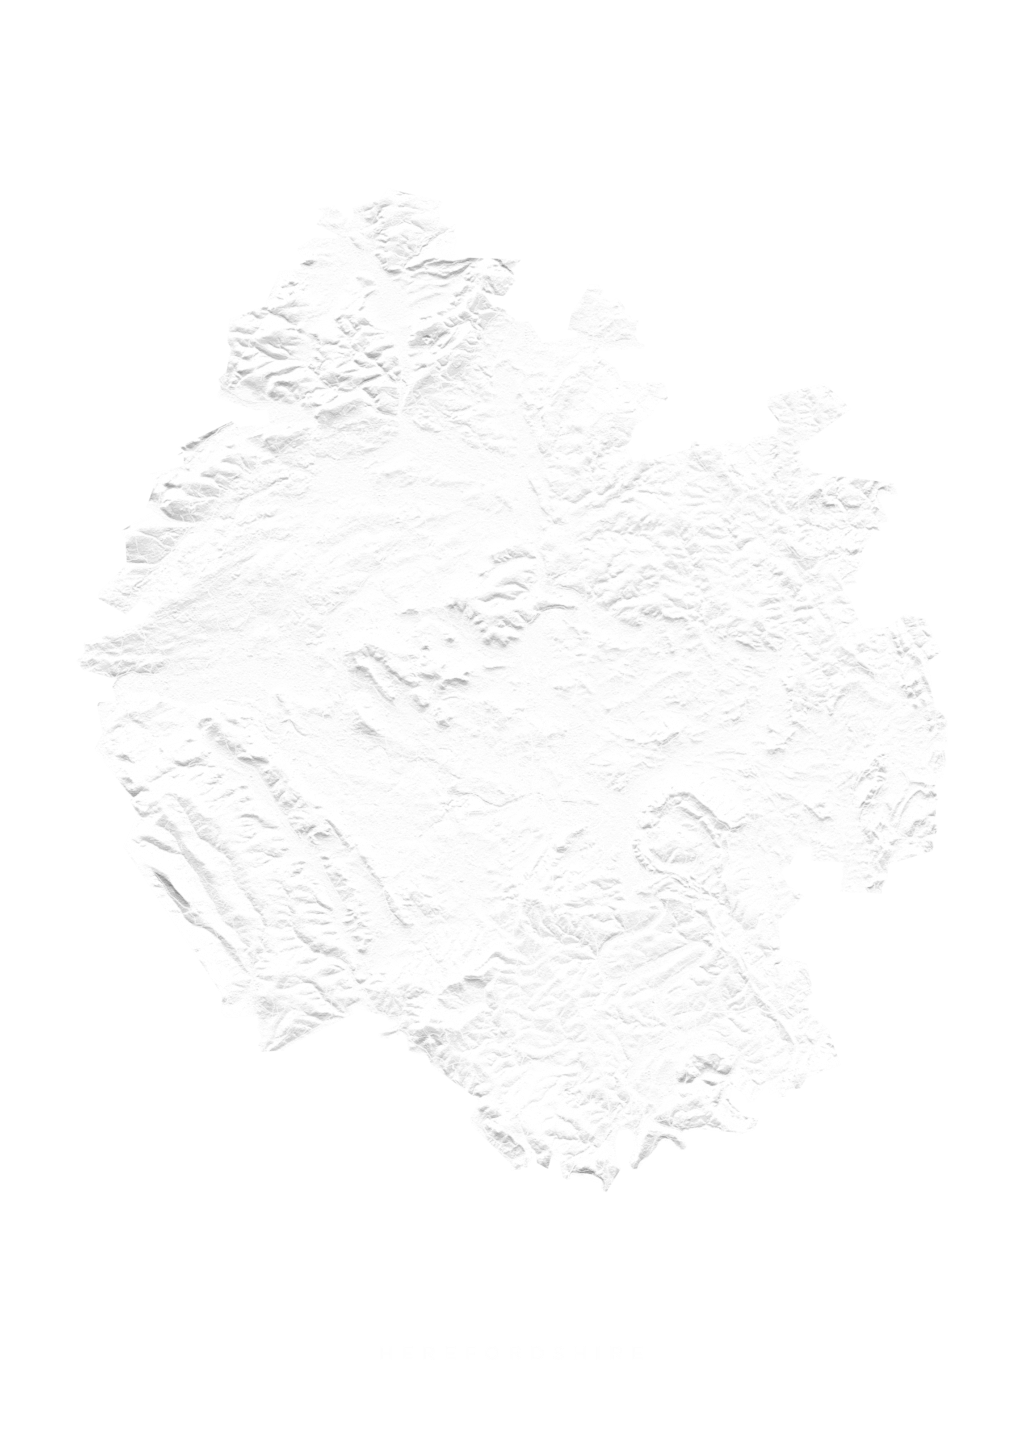 Herefordshire wall map